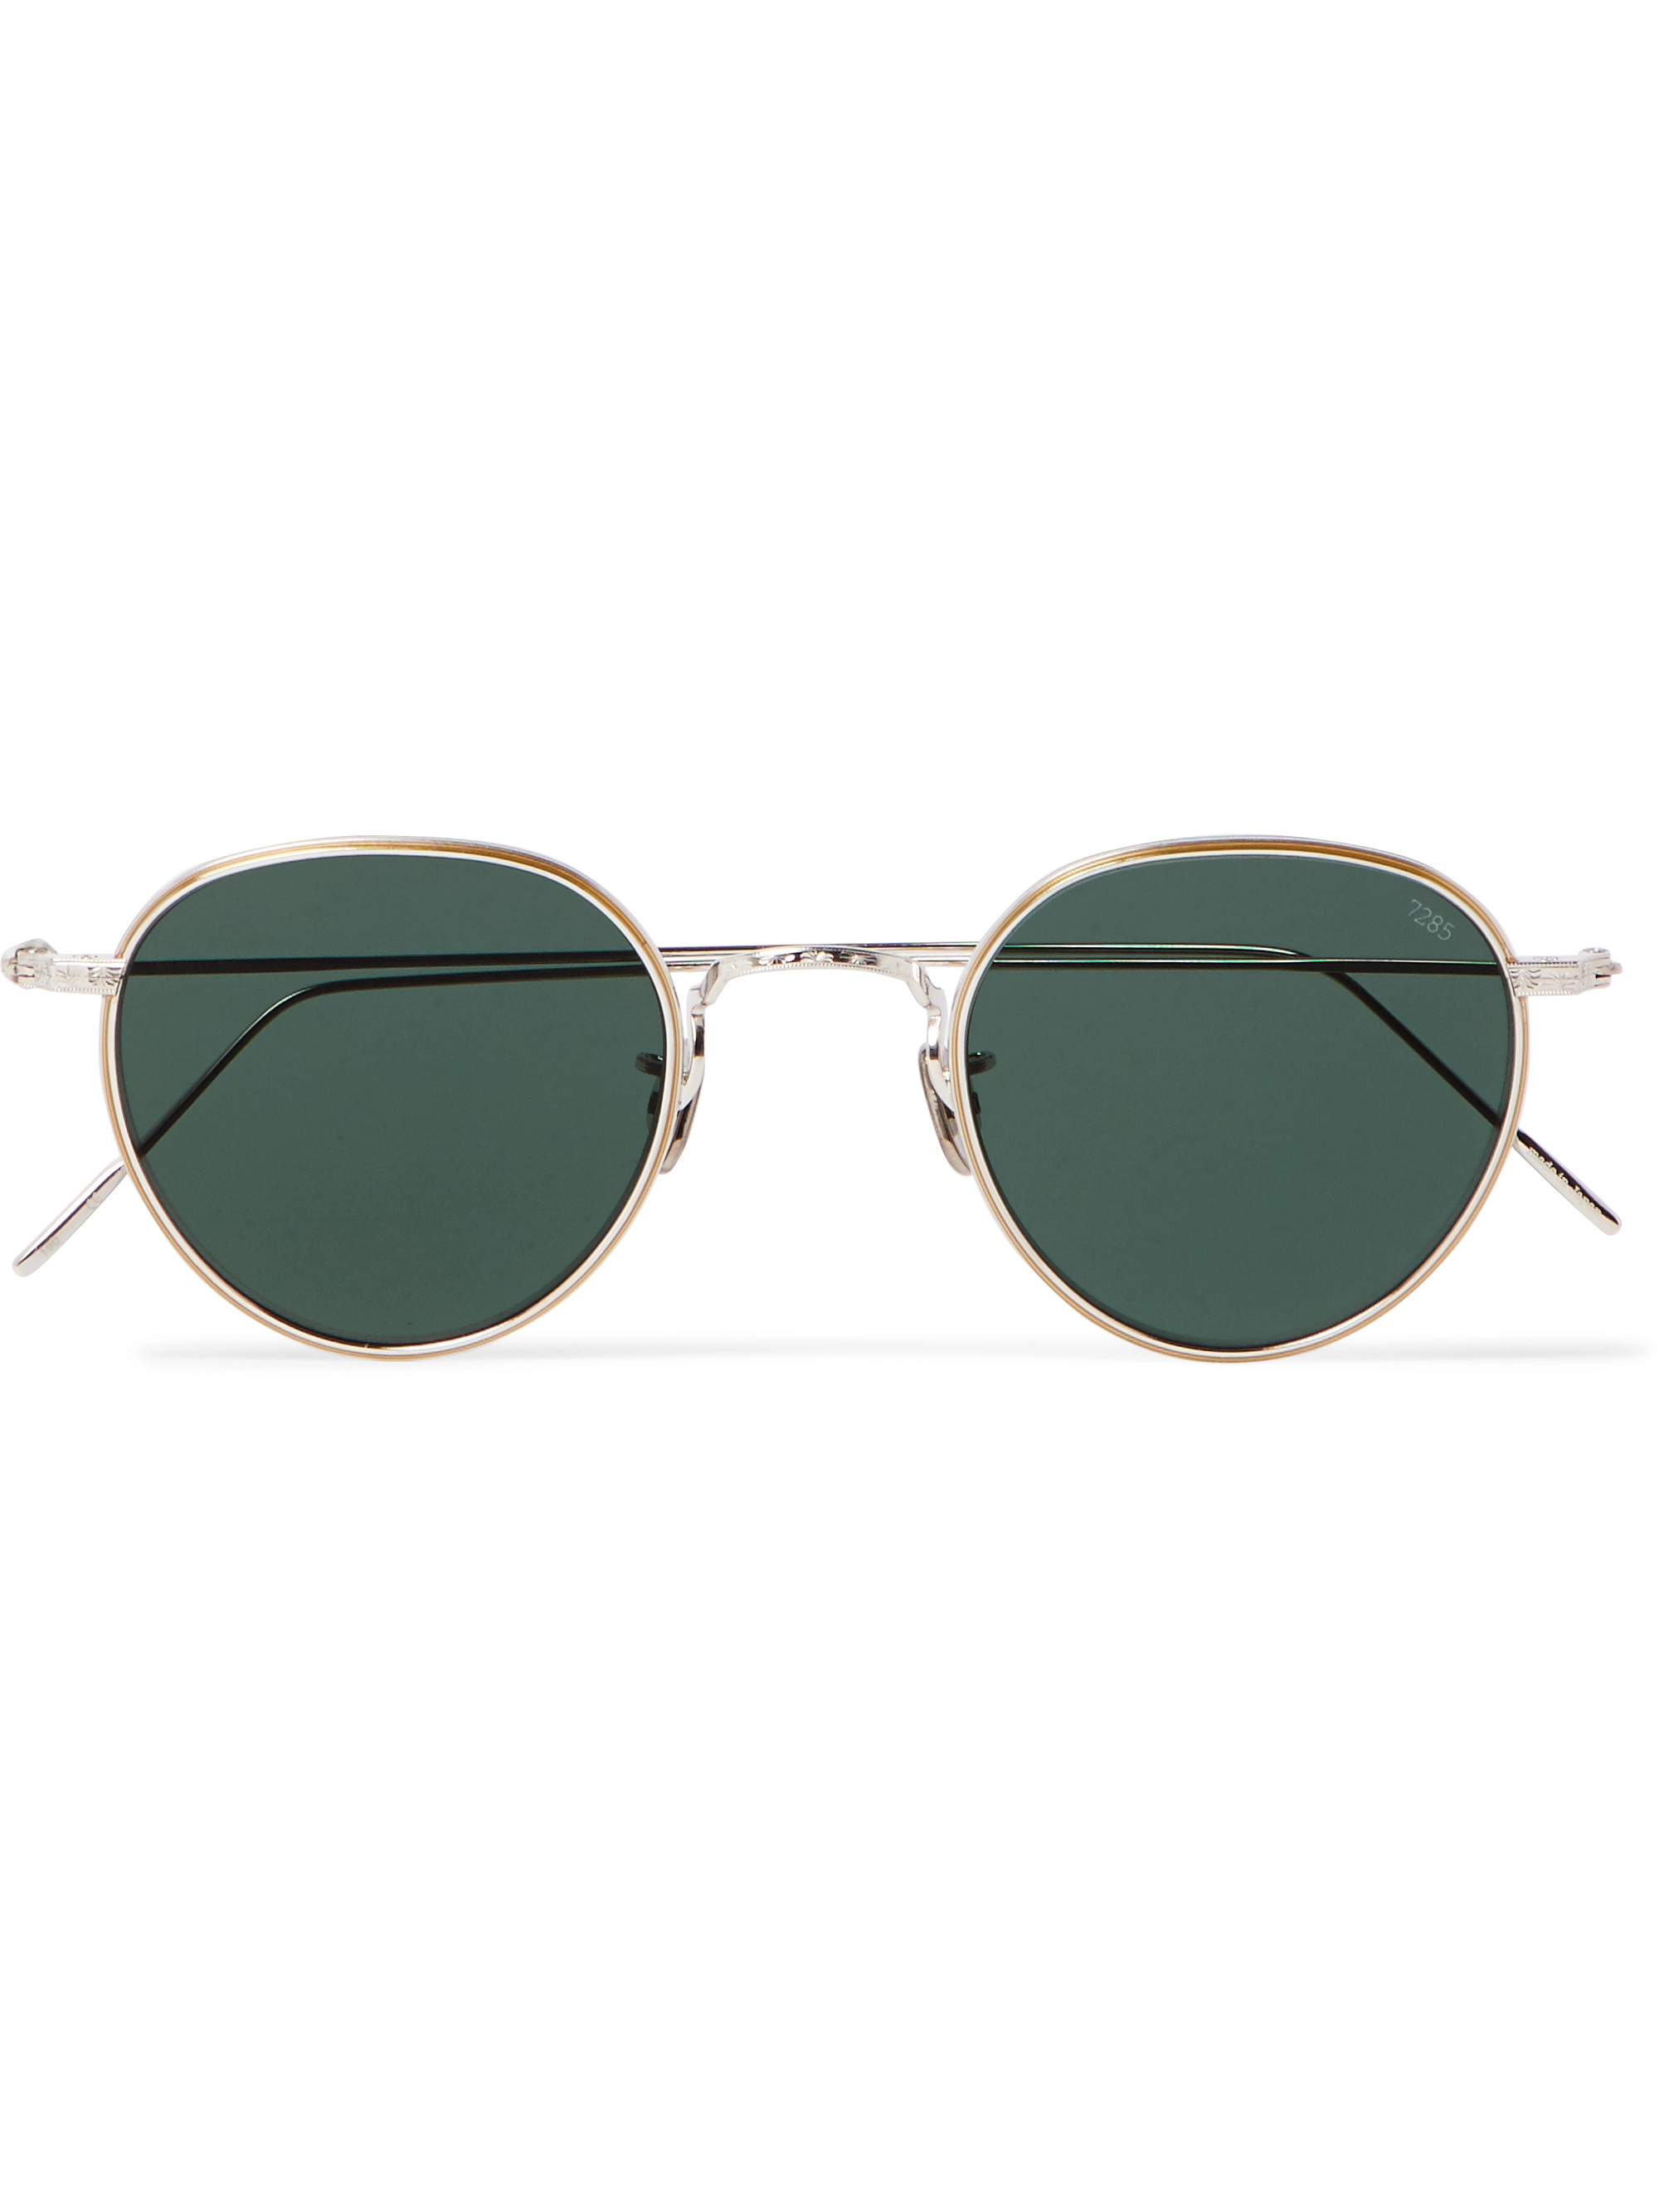 Eyevan 7285 Round-Frame Gold-Plated Sunglasses